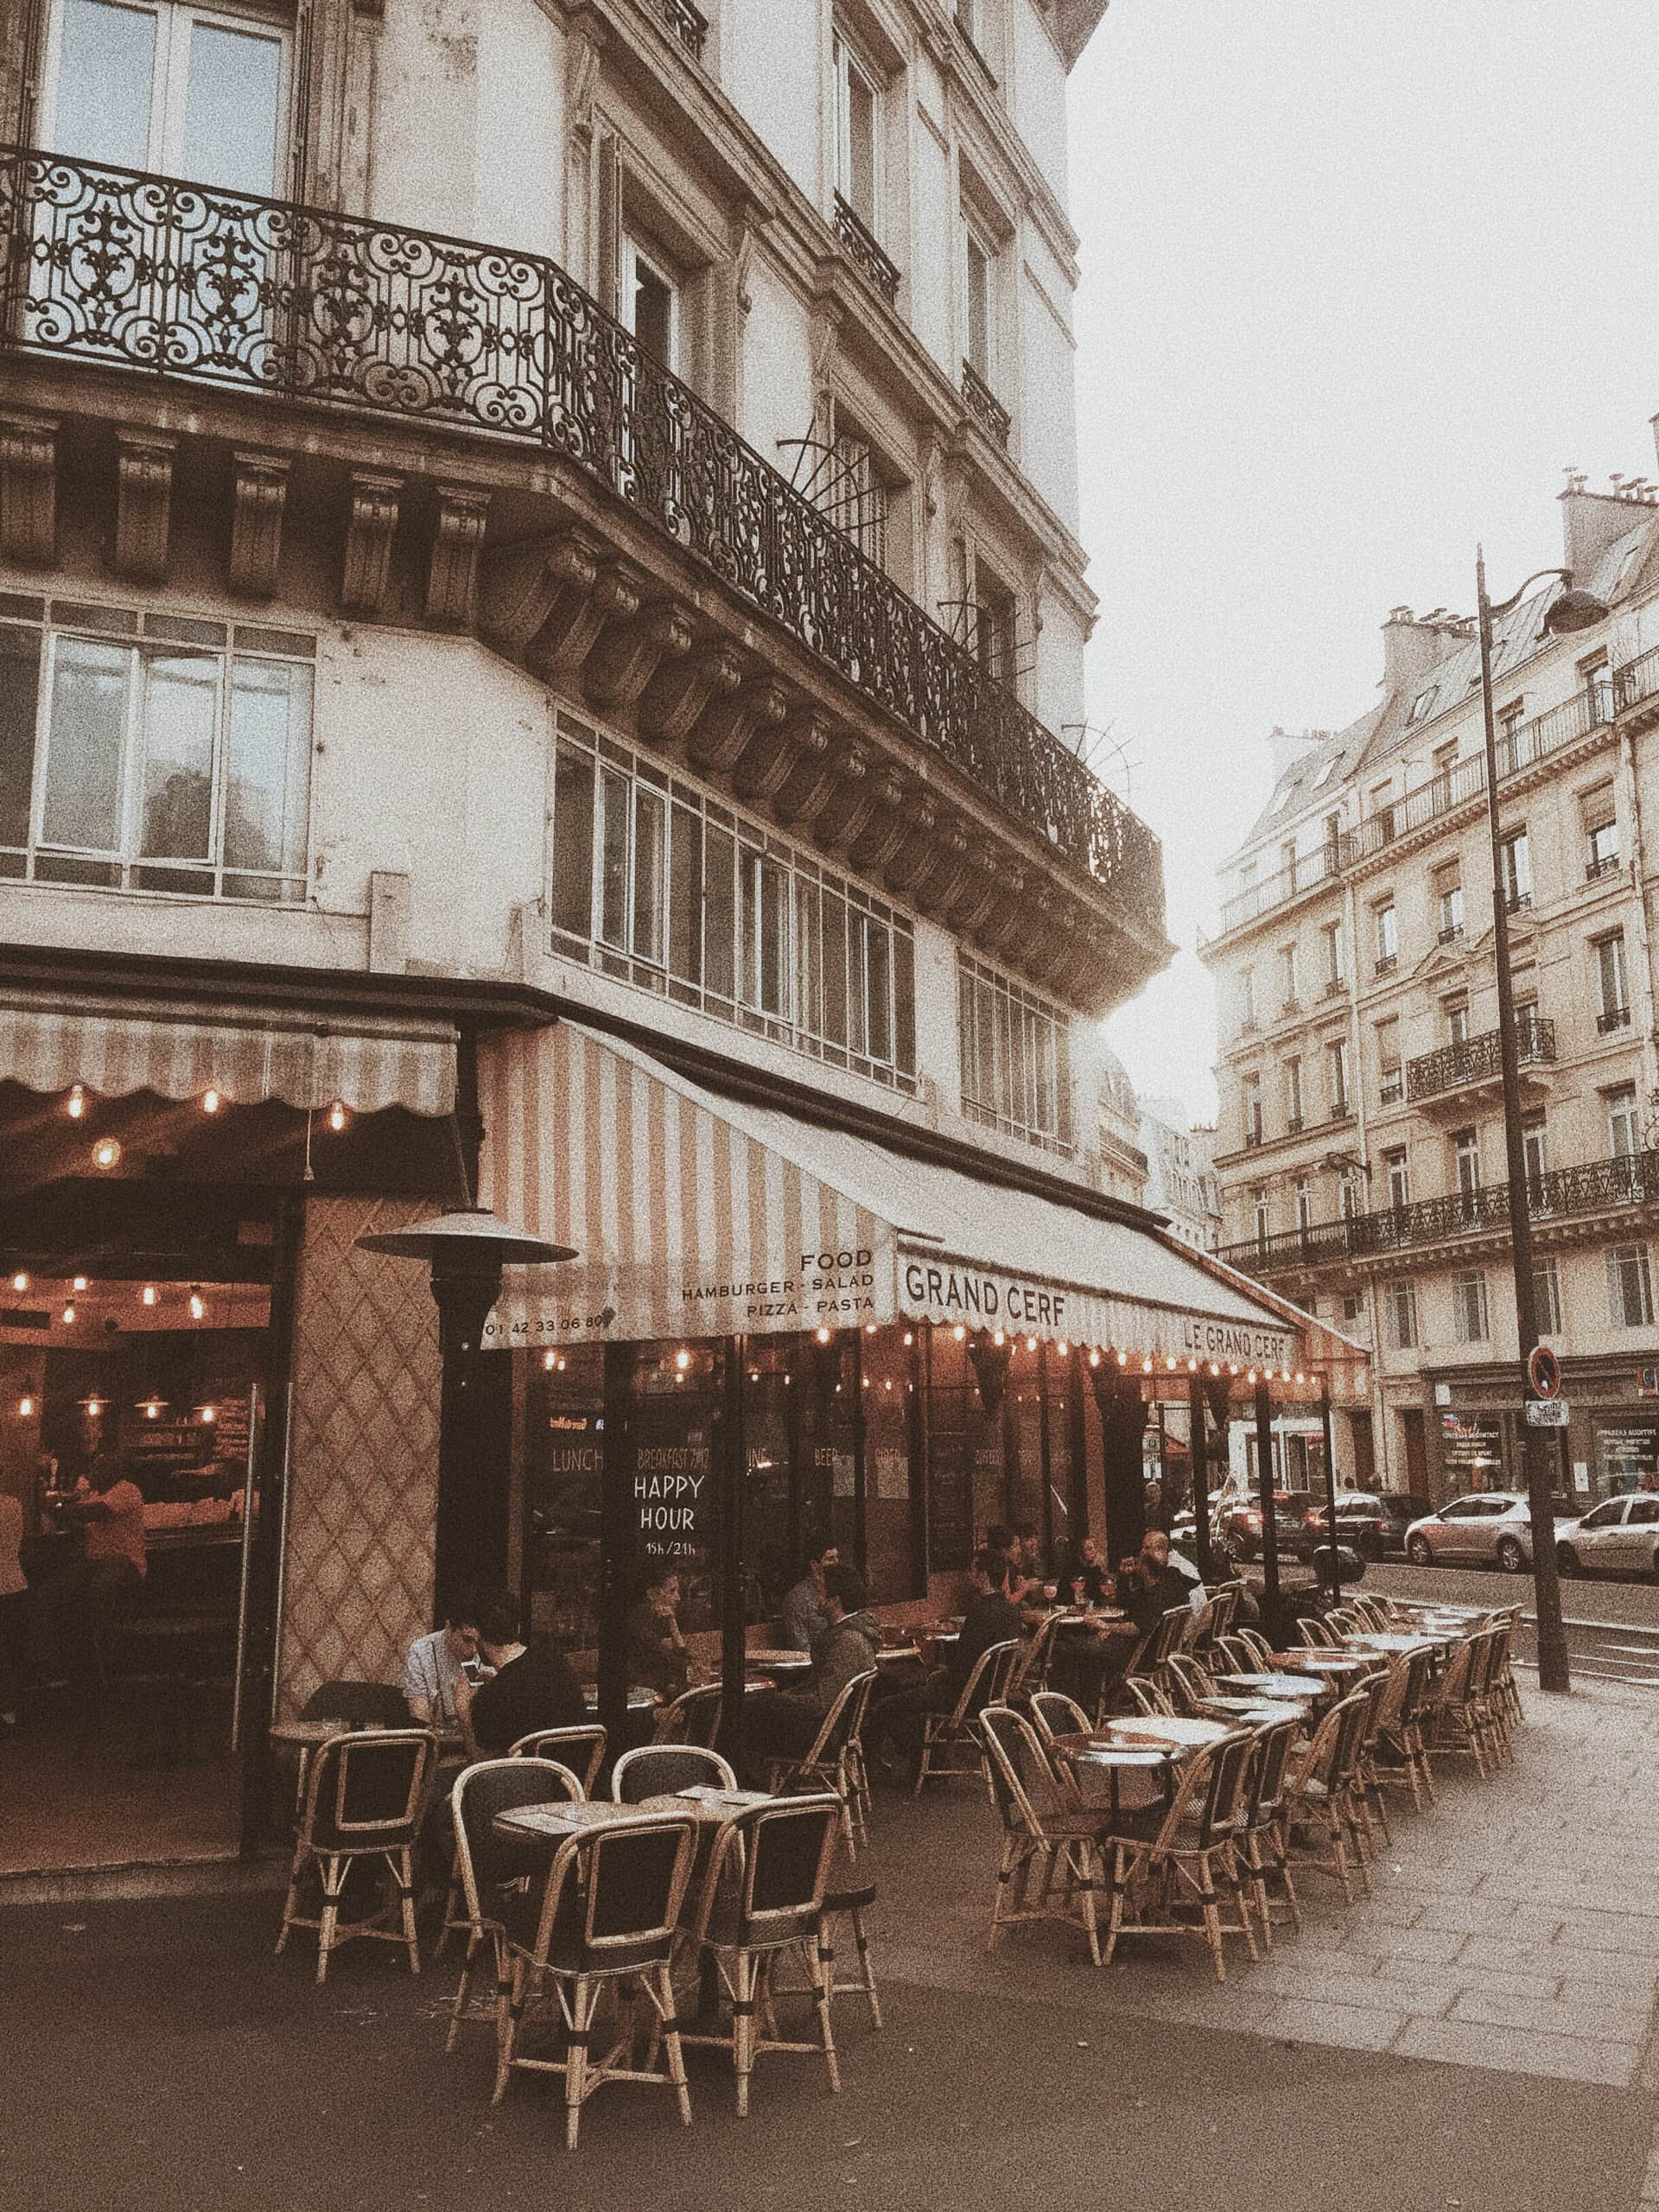 Sarah Loven - Jetsetlust.com // Le Grand Cerf Cafe // Paris Travel Guide: Where to Stay